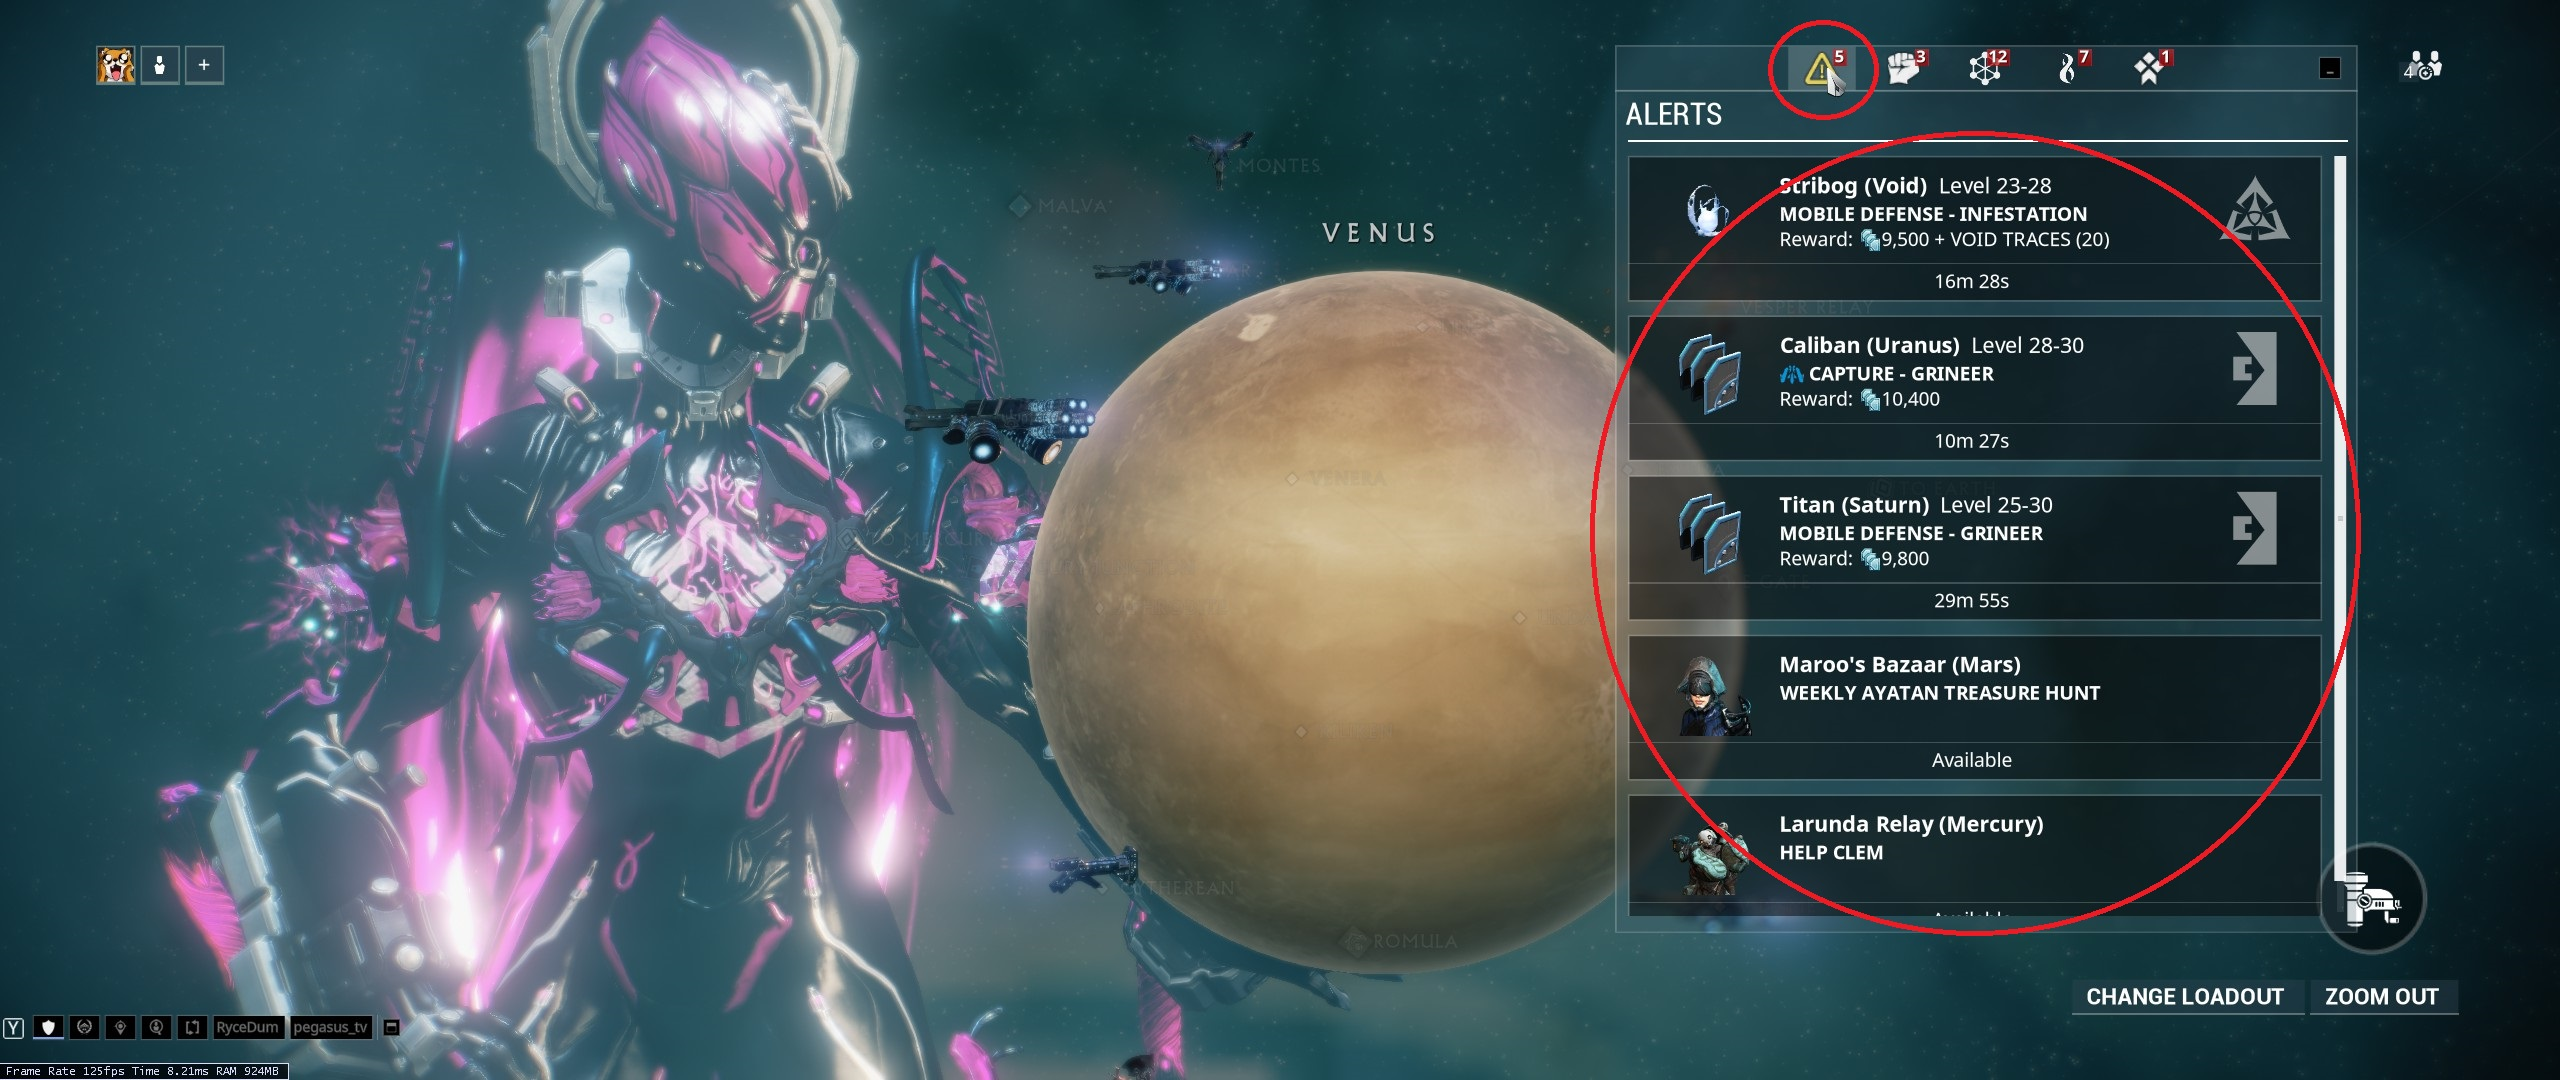 Steam community guide ultimate beginners guide to warframe they reward important items mods vauban warframe orokin catalystsreactor blueprints forma blueprints nitain kubrow eggs kavat genetic codes malvernweather Image collections